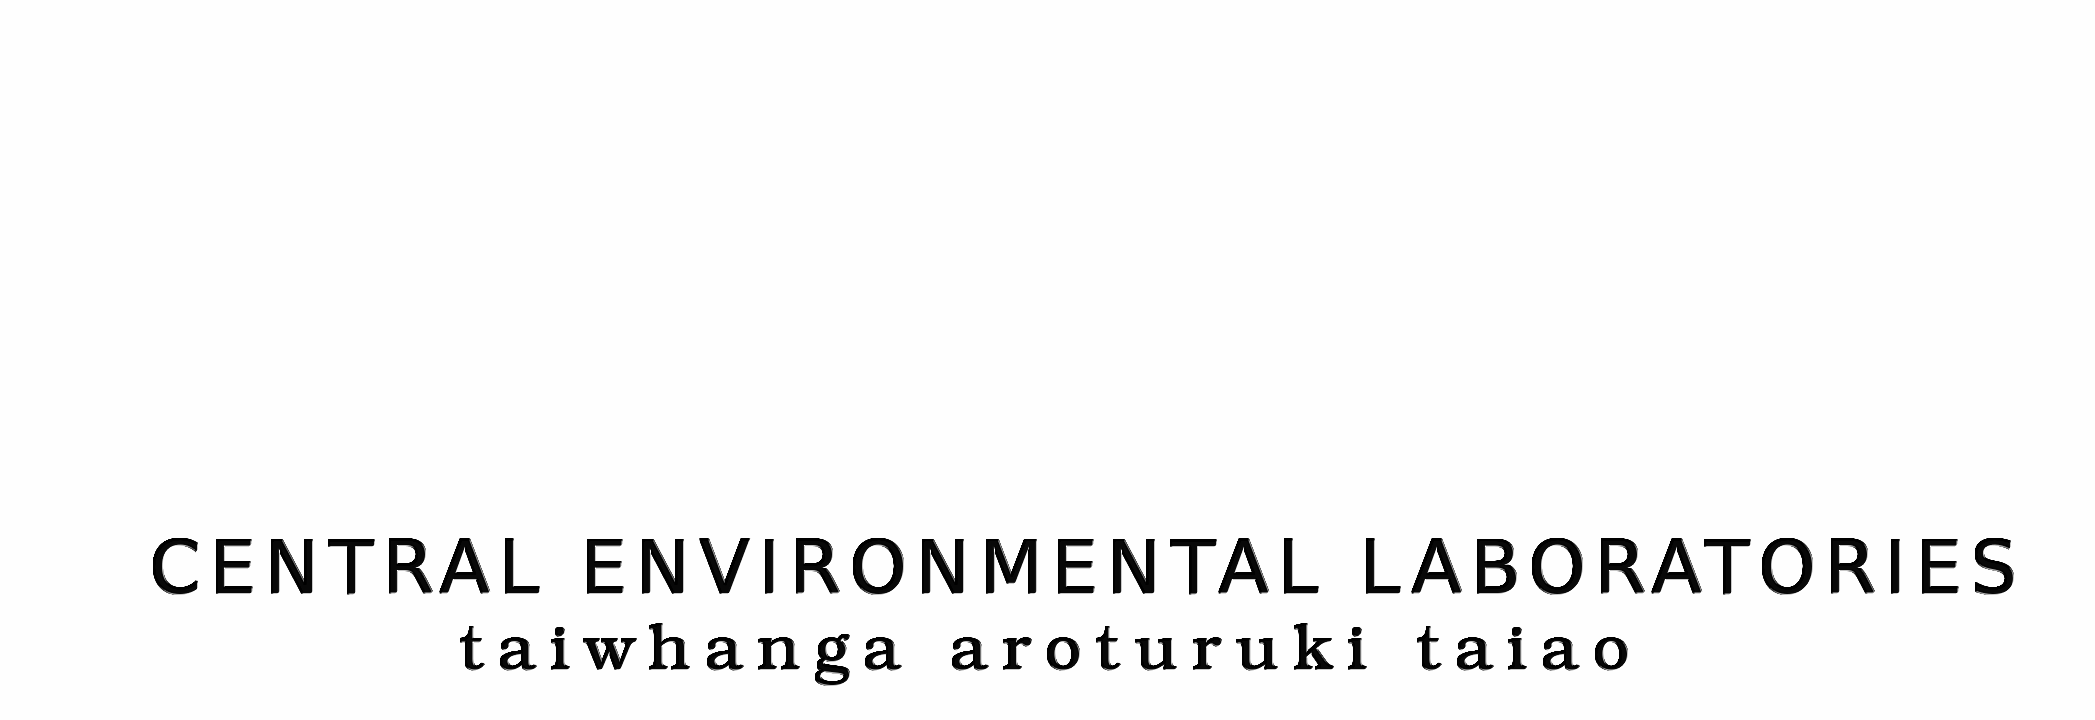 Central Environmental Laboratories